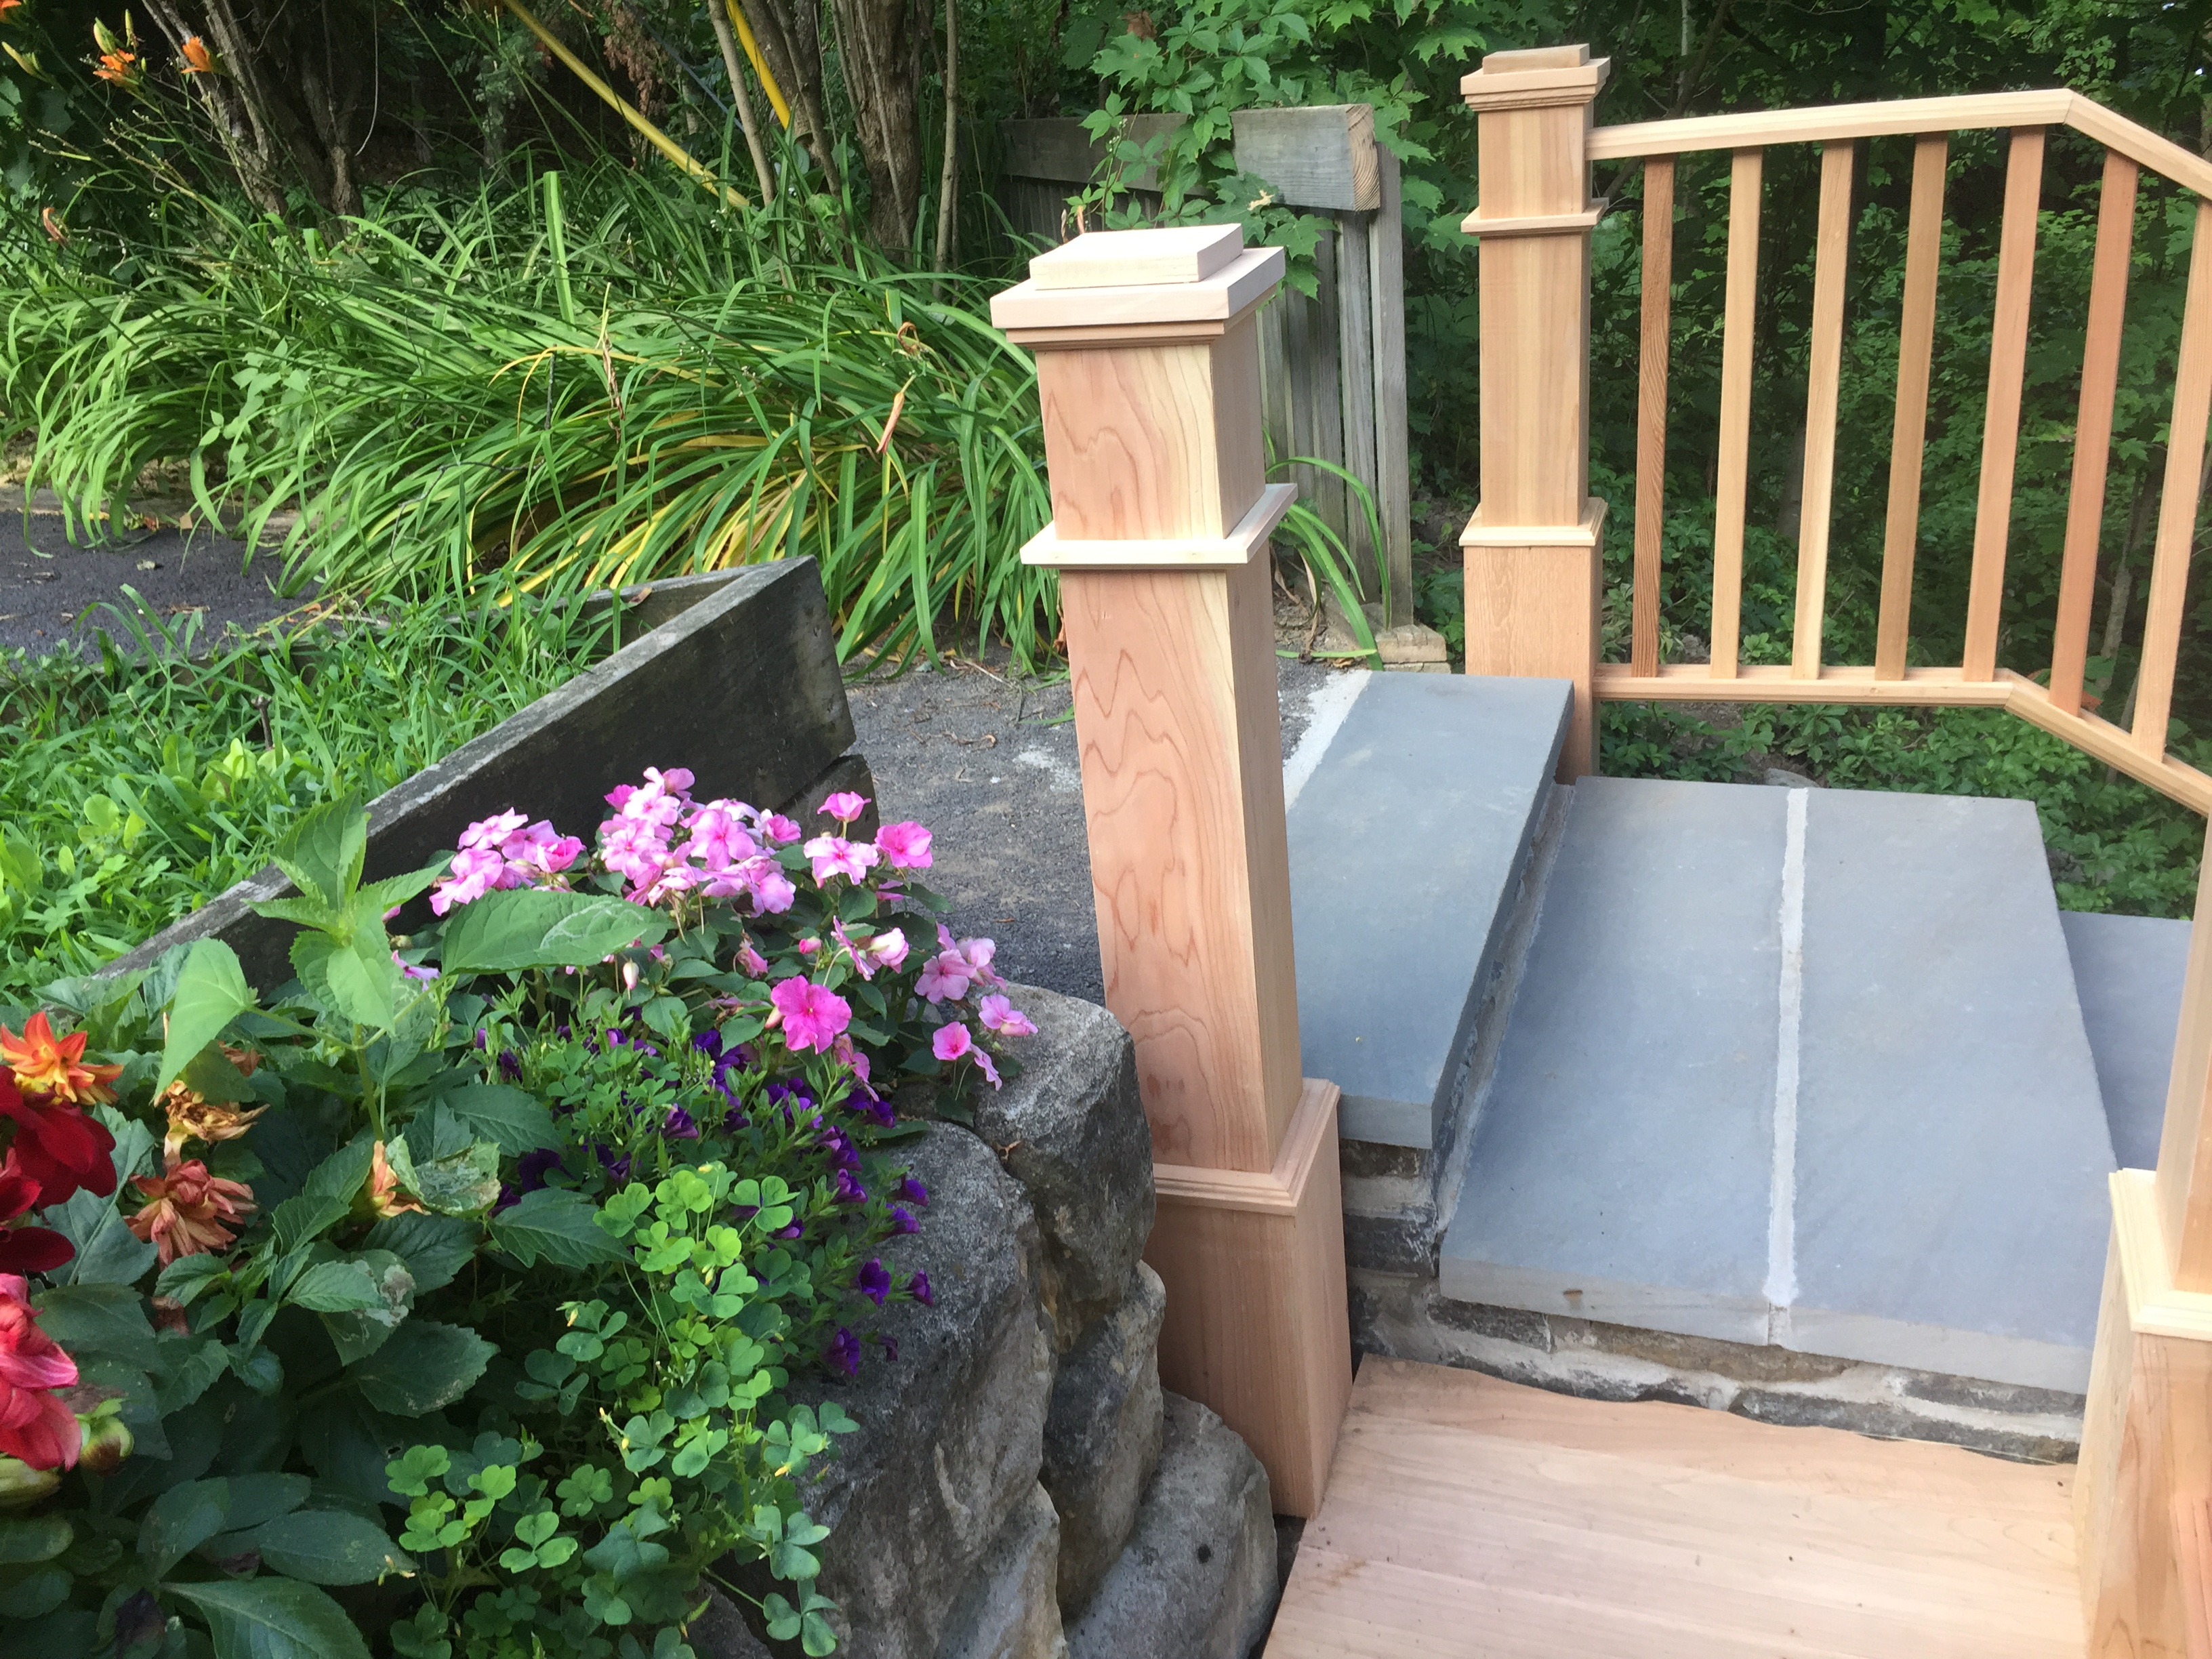 Outdoor Living | Patriot Construction of Upstate New York ... on Patriot Outdoor Living id=75102